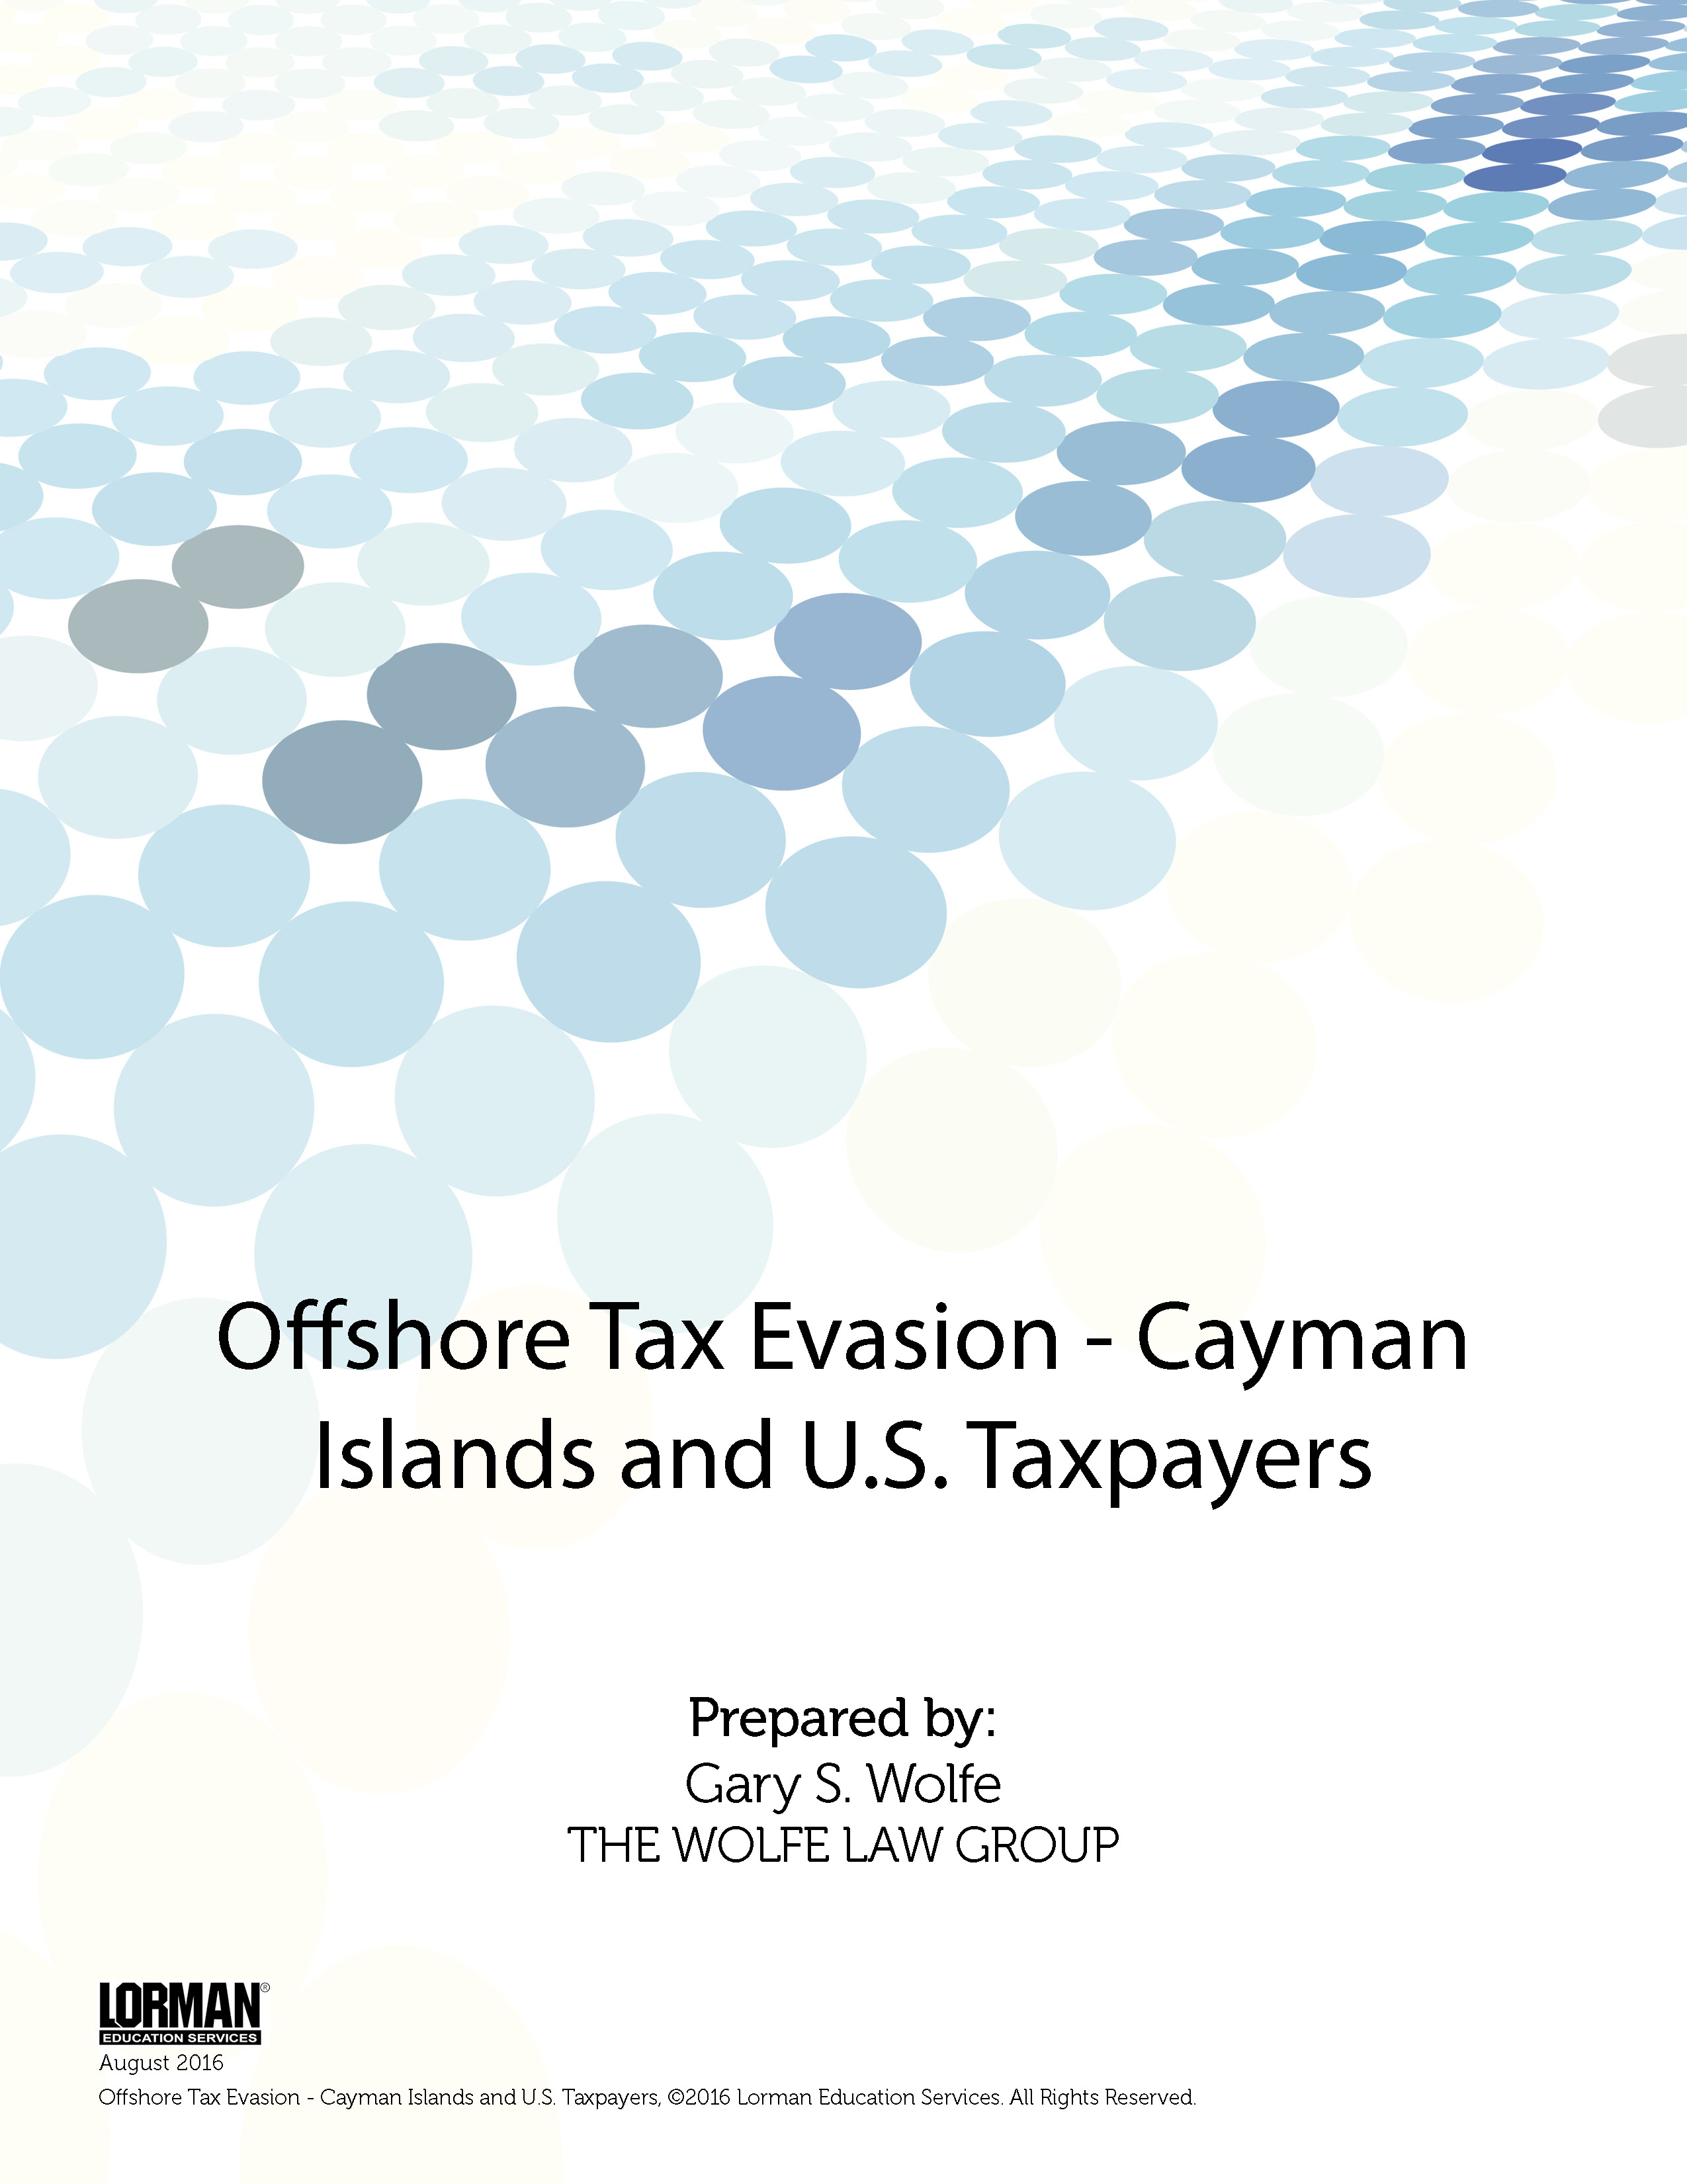 Offshore Tax Evasion - Cayman Islands and U.S. Taxpayers